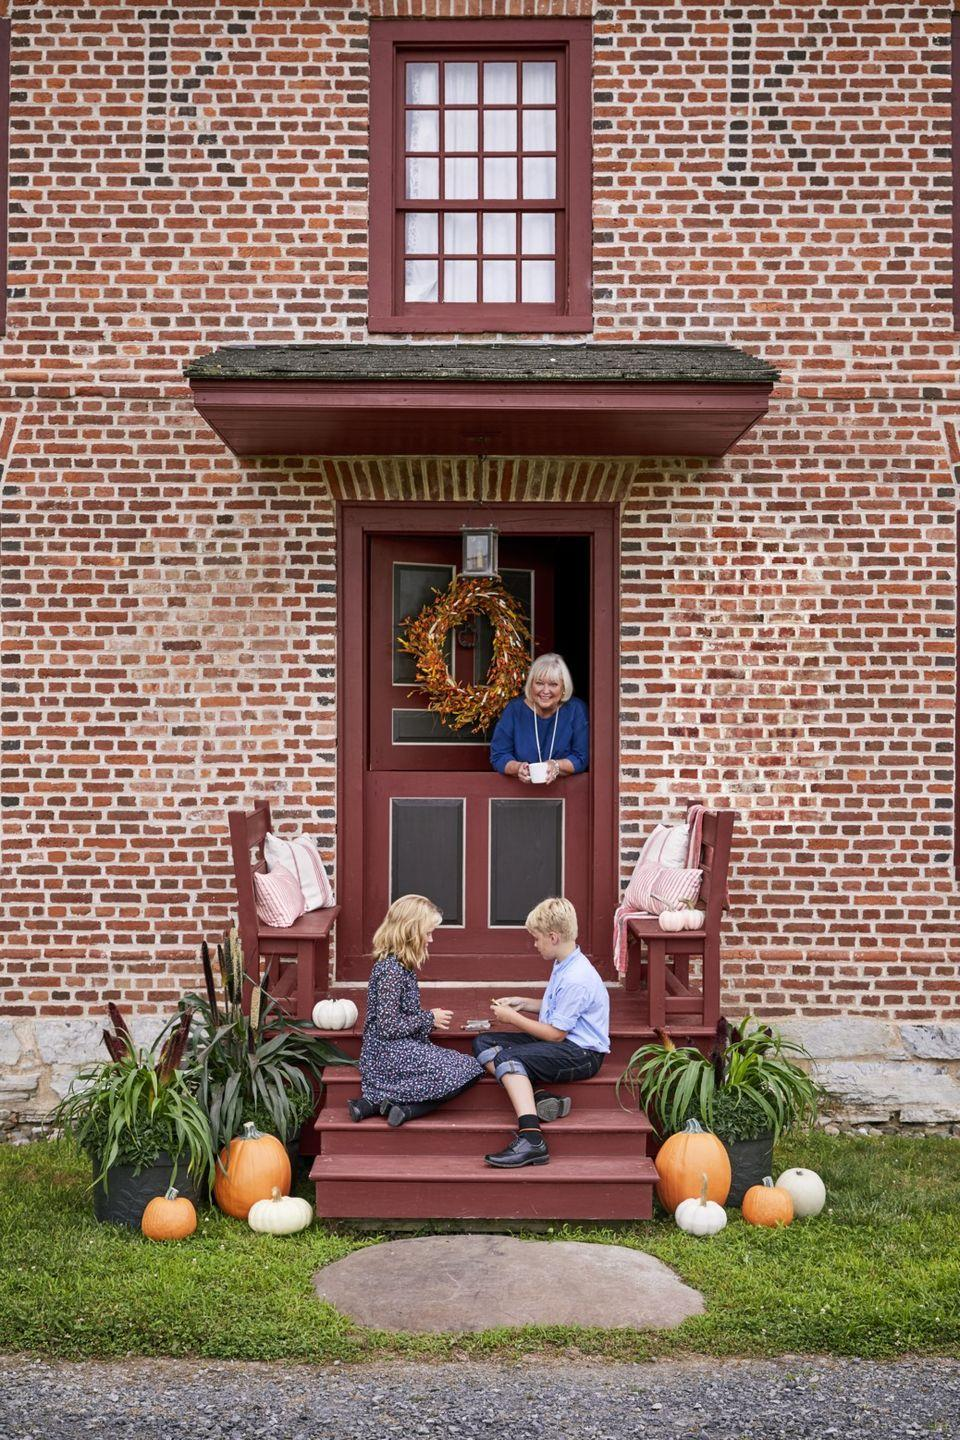 """<p>A deep red hue looks flawless against a brick home, evoking an old schoolhouse feel.</p><p><a class=""""link rapid-noclick-resp"""" href=""""https://store.benjaminmoore.com/storefront/color-samples/paint-color-samples-1-pint/prodPRM01A.html?sbcColor=PM_15"""" rel=""""nofollow noopener"""" target=""""_blank"""" data-ylk=""""slk:SHOP COTTAGE RED BY BENJAMIN MOORE"""">SHOP COTTAGE RED BY BENJAMIN MOORE</a></p>"""